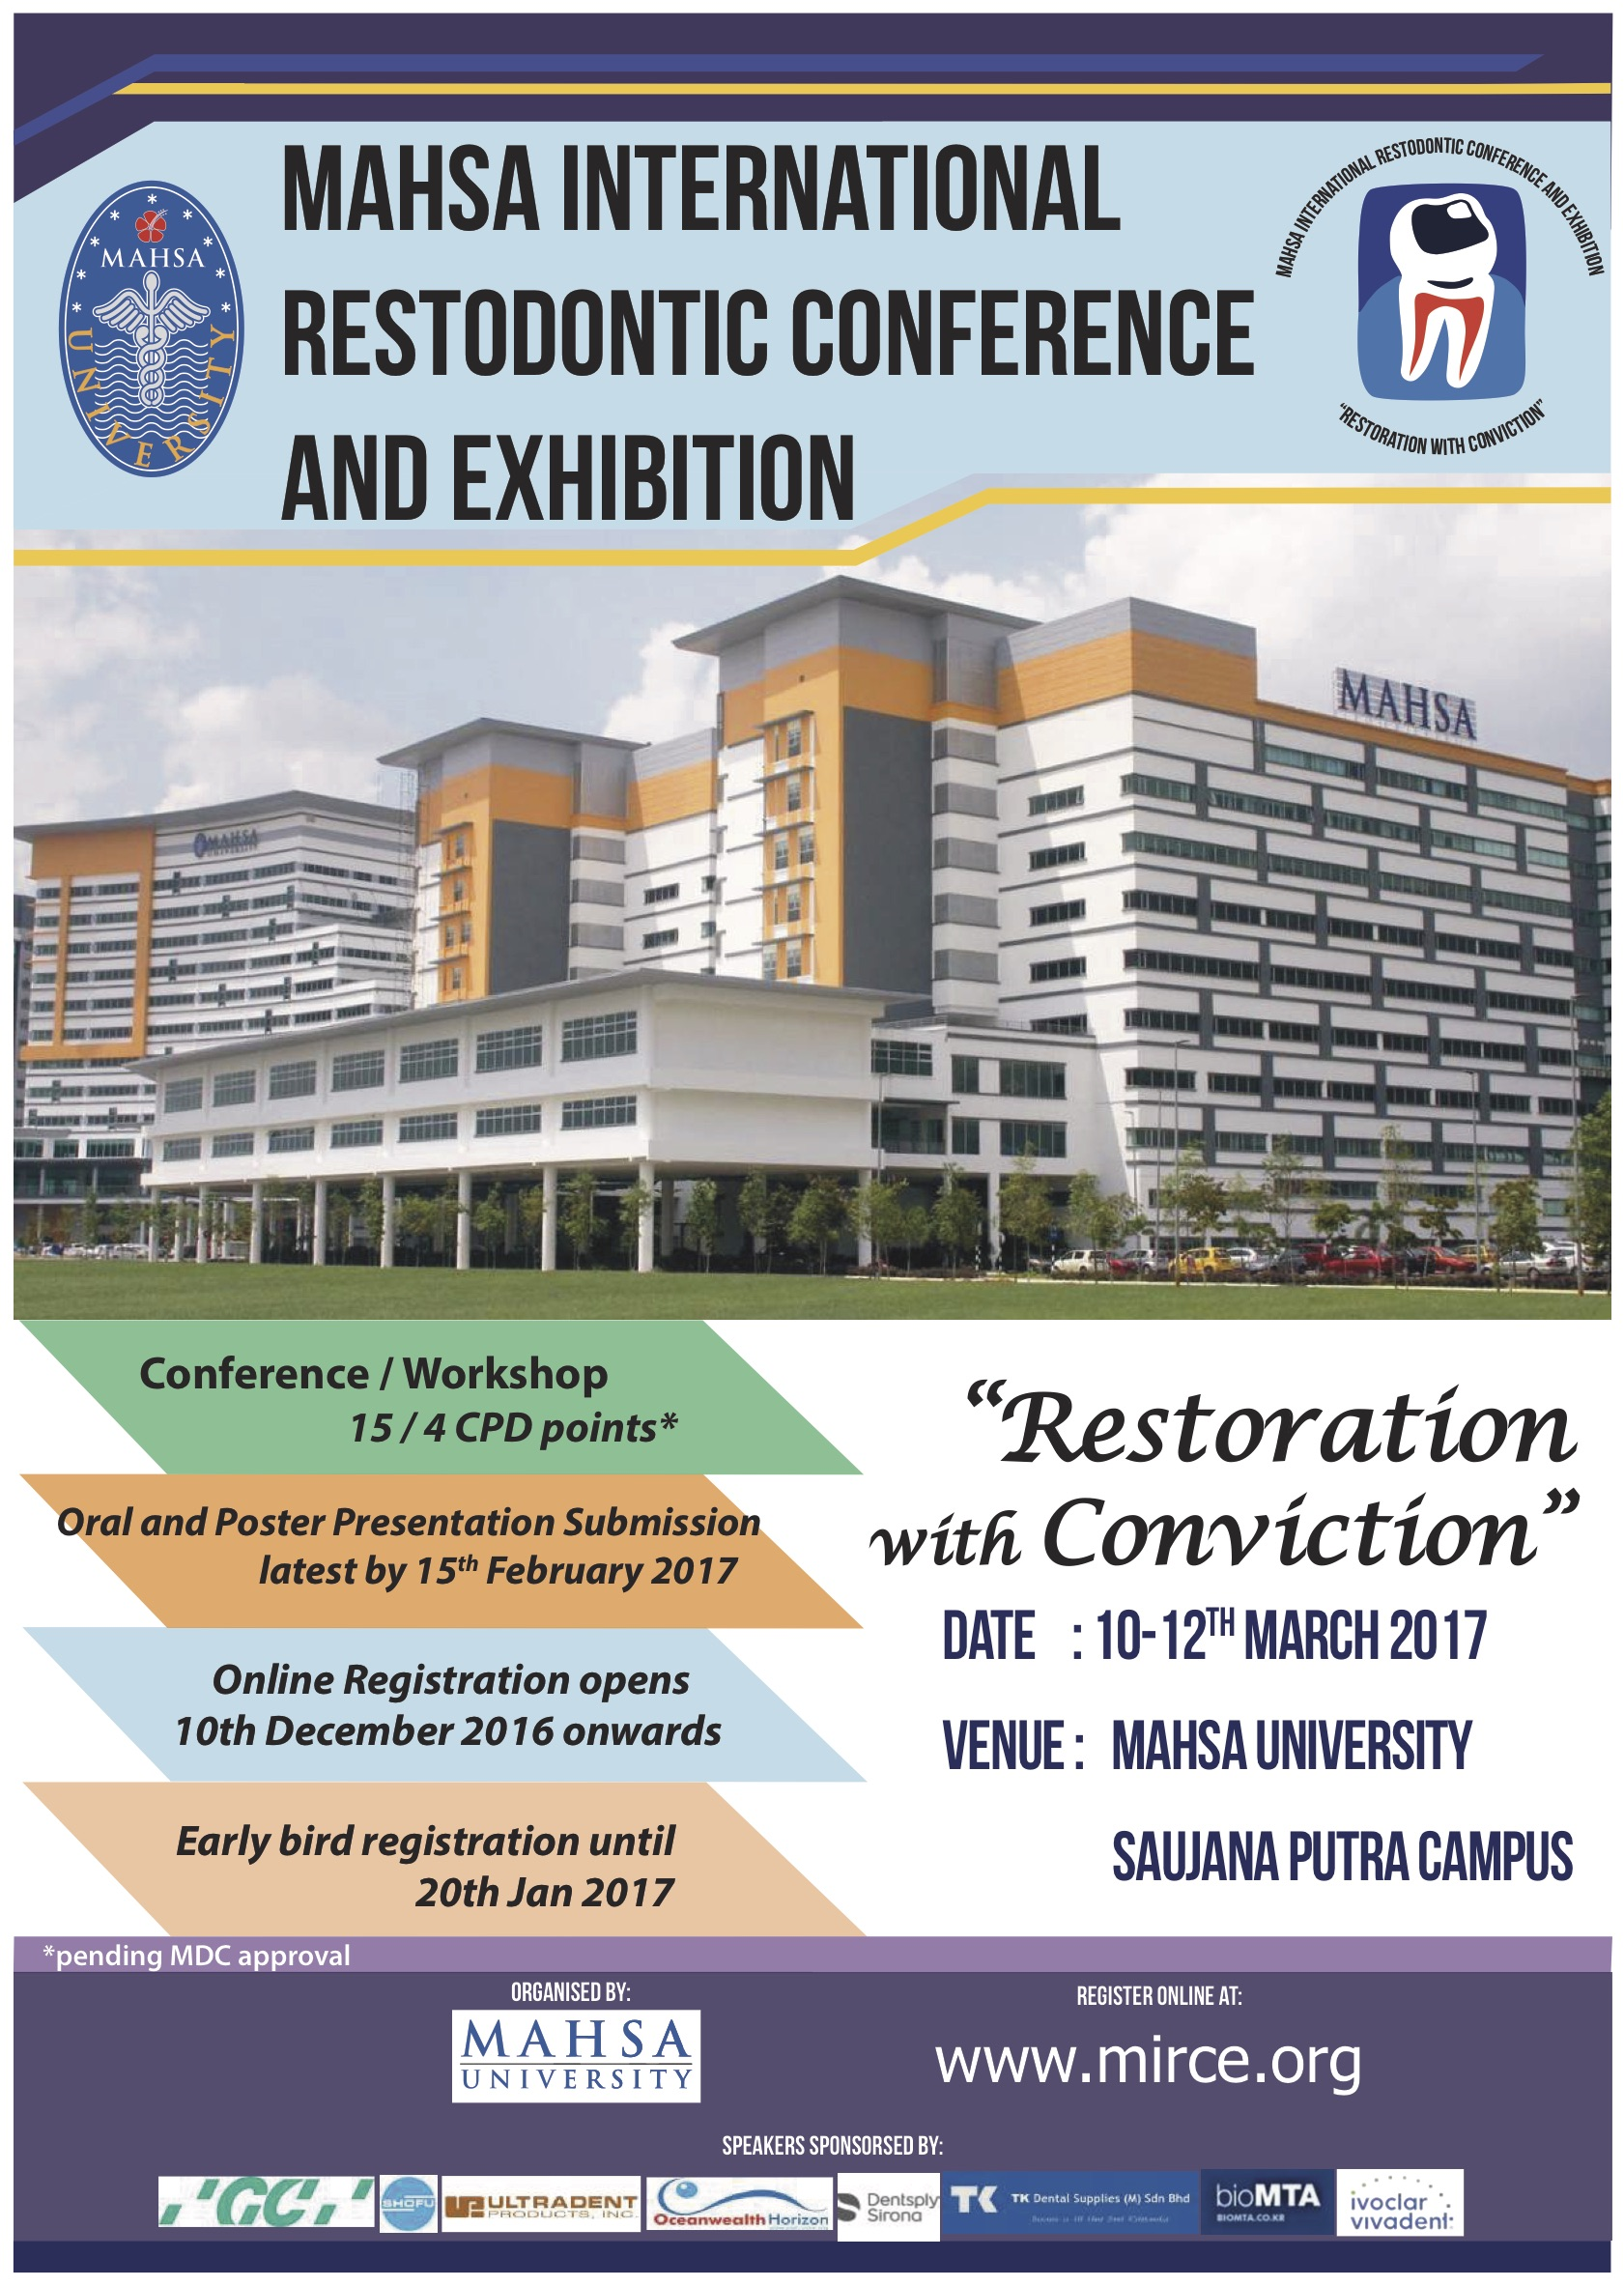 Mahsa-international-restodontic-conference-and-exhibition-dentistsnearby-1